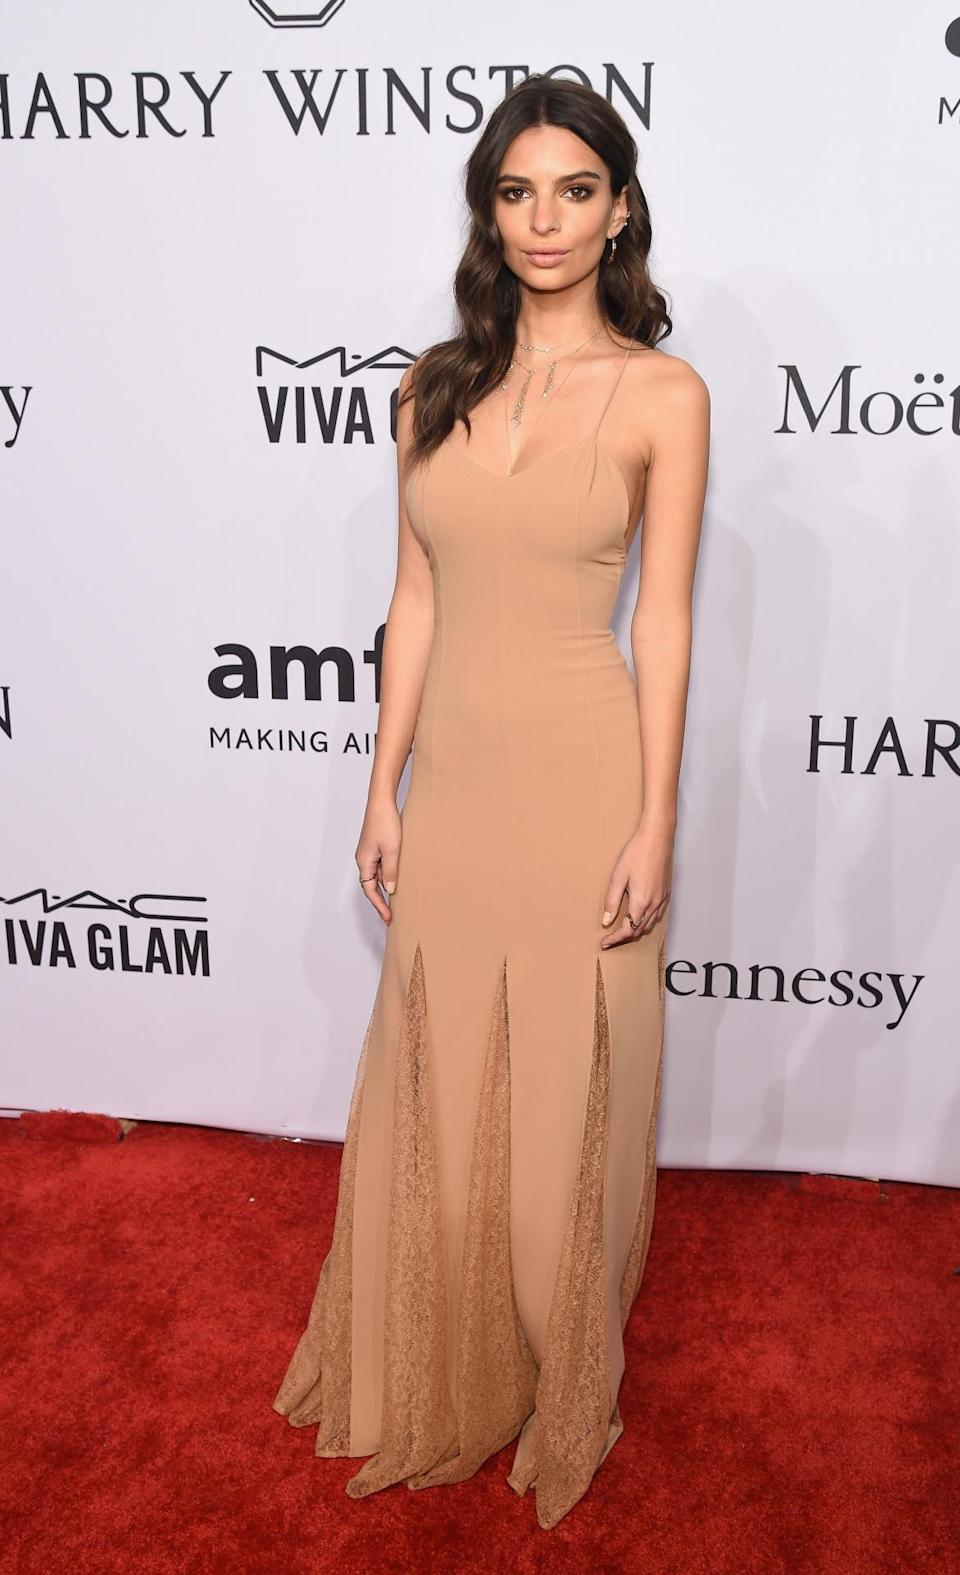 <p>The actress showed off her model frame in a figure-hugging Michael Kors gown. <i>[Photo: Getty]</i><br></p>